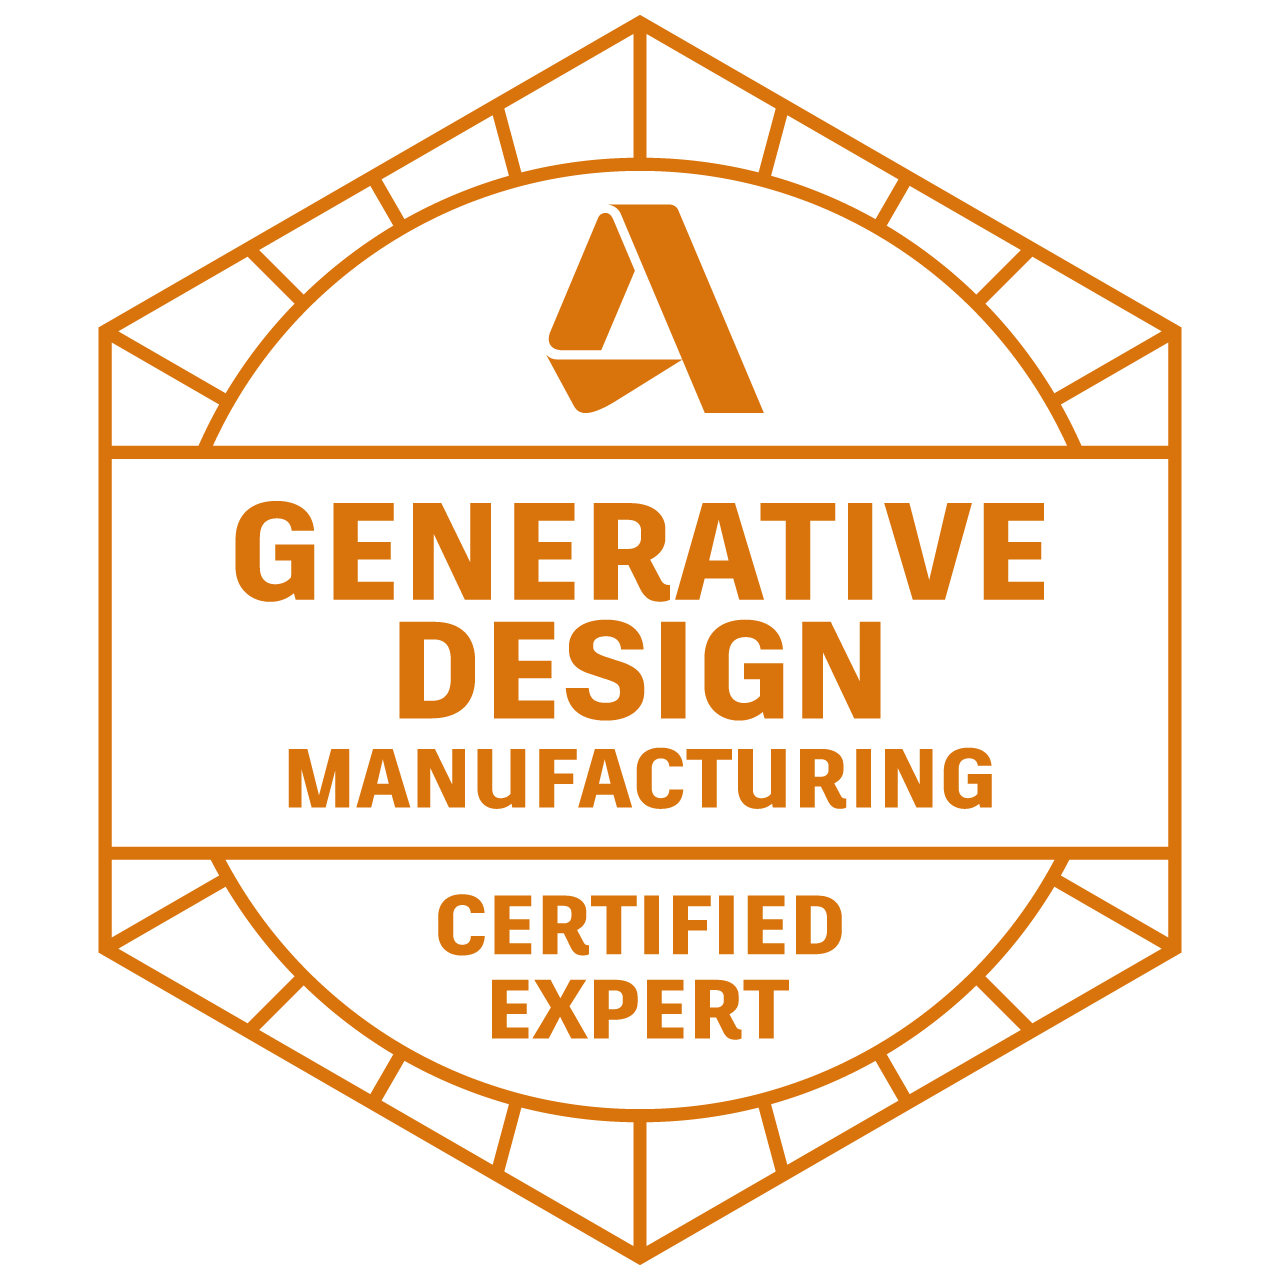 Autodesk Certified Expert in Generative Design for Manufacturing